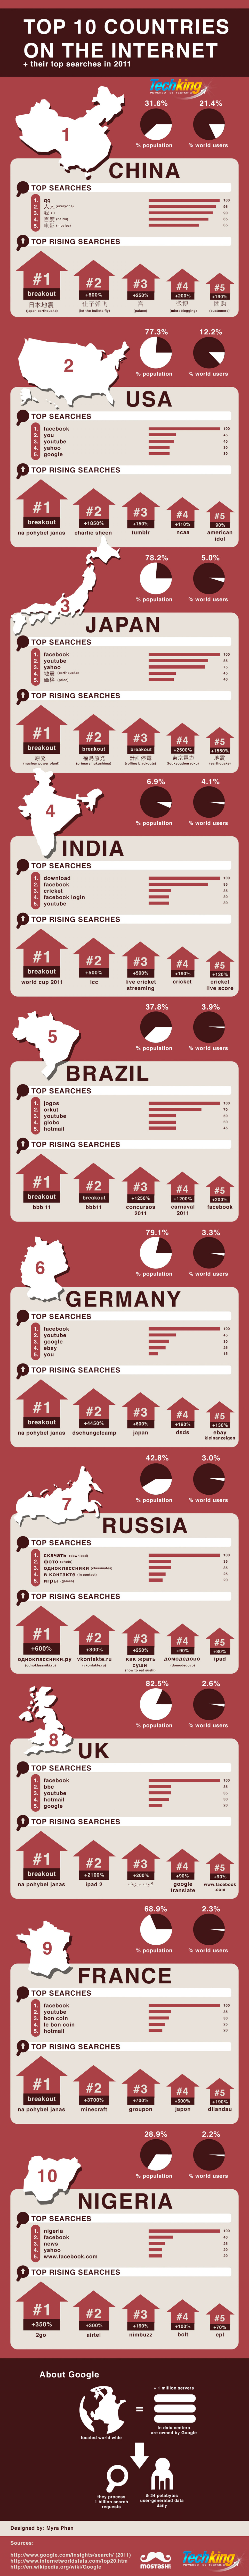 The Top Ten Searched Countries On the Internet Infographic